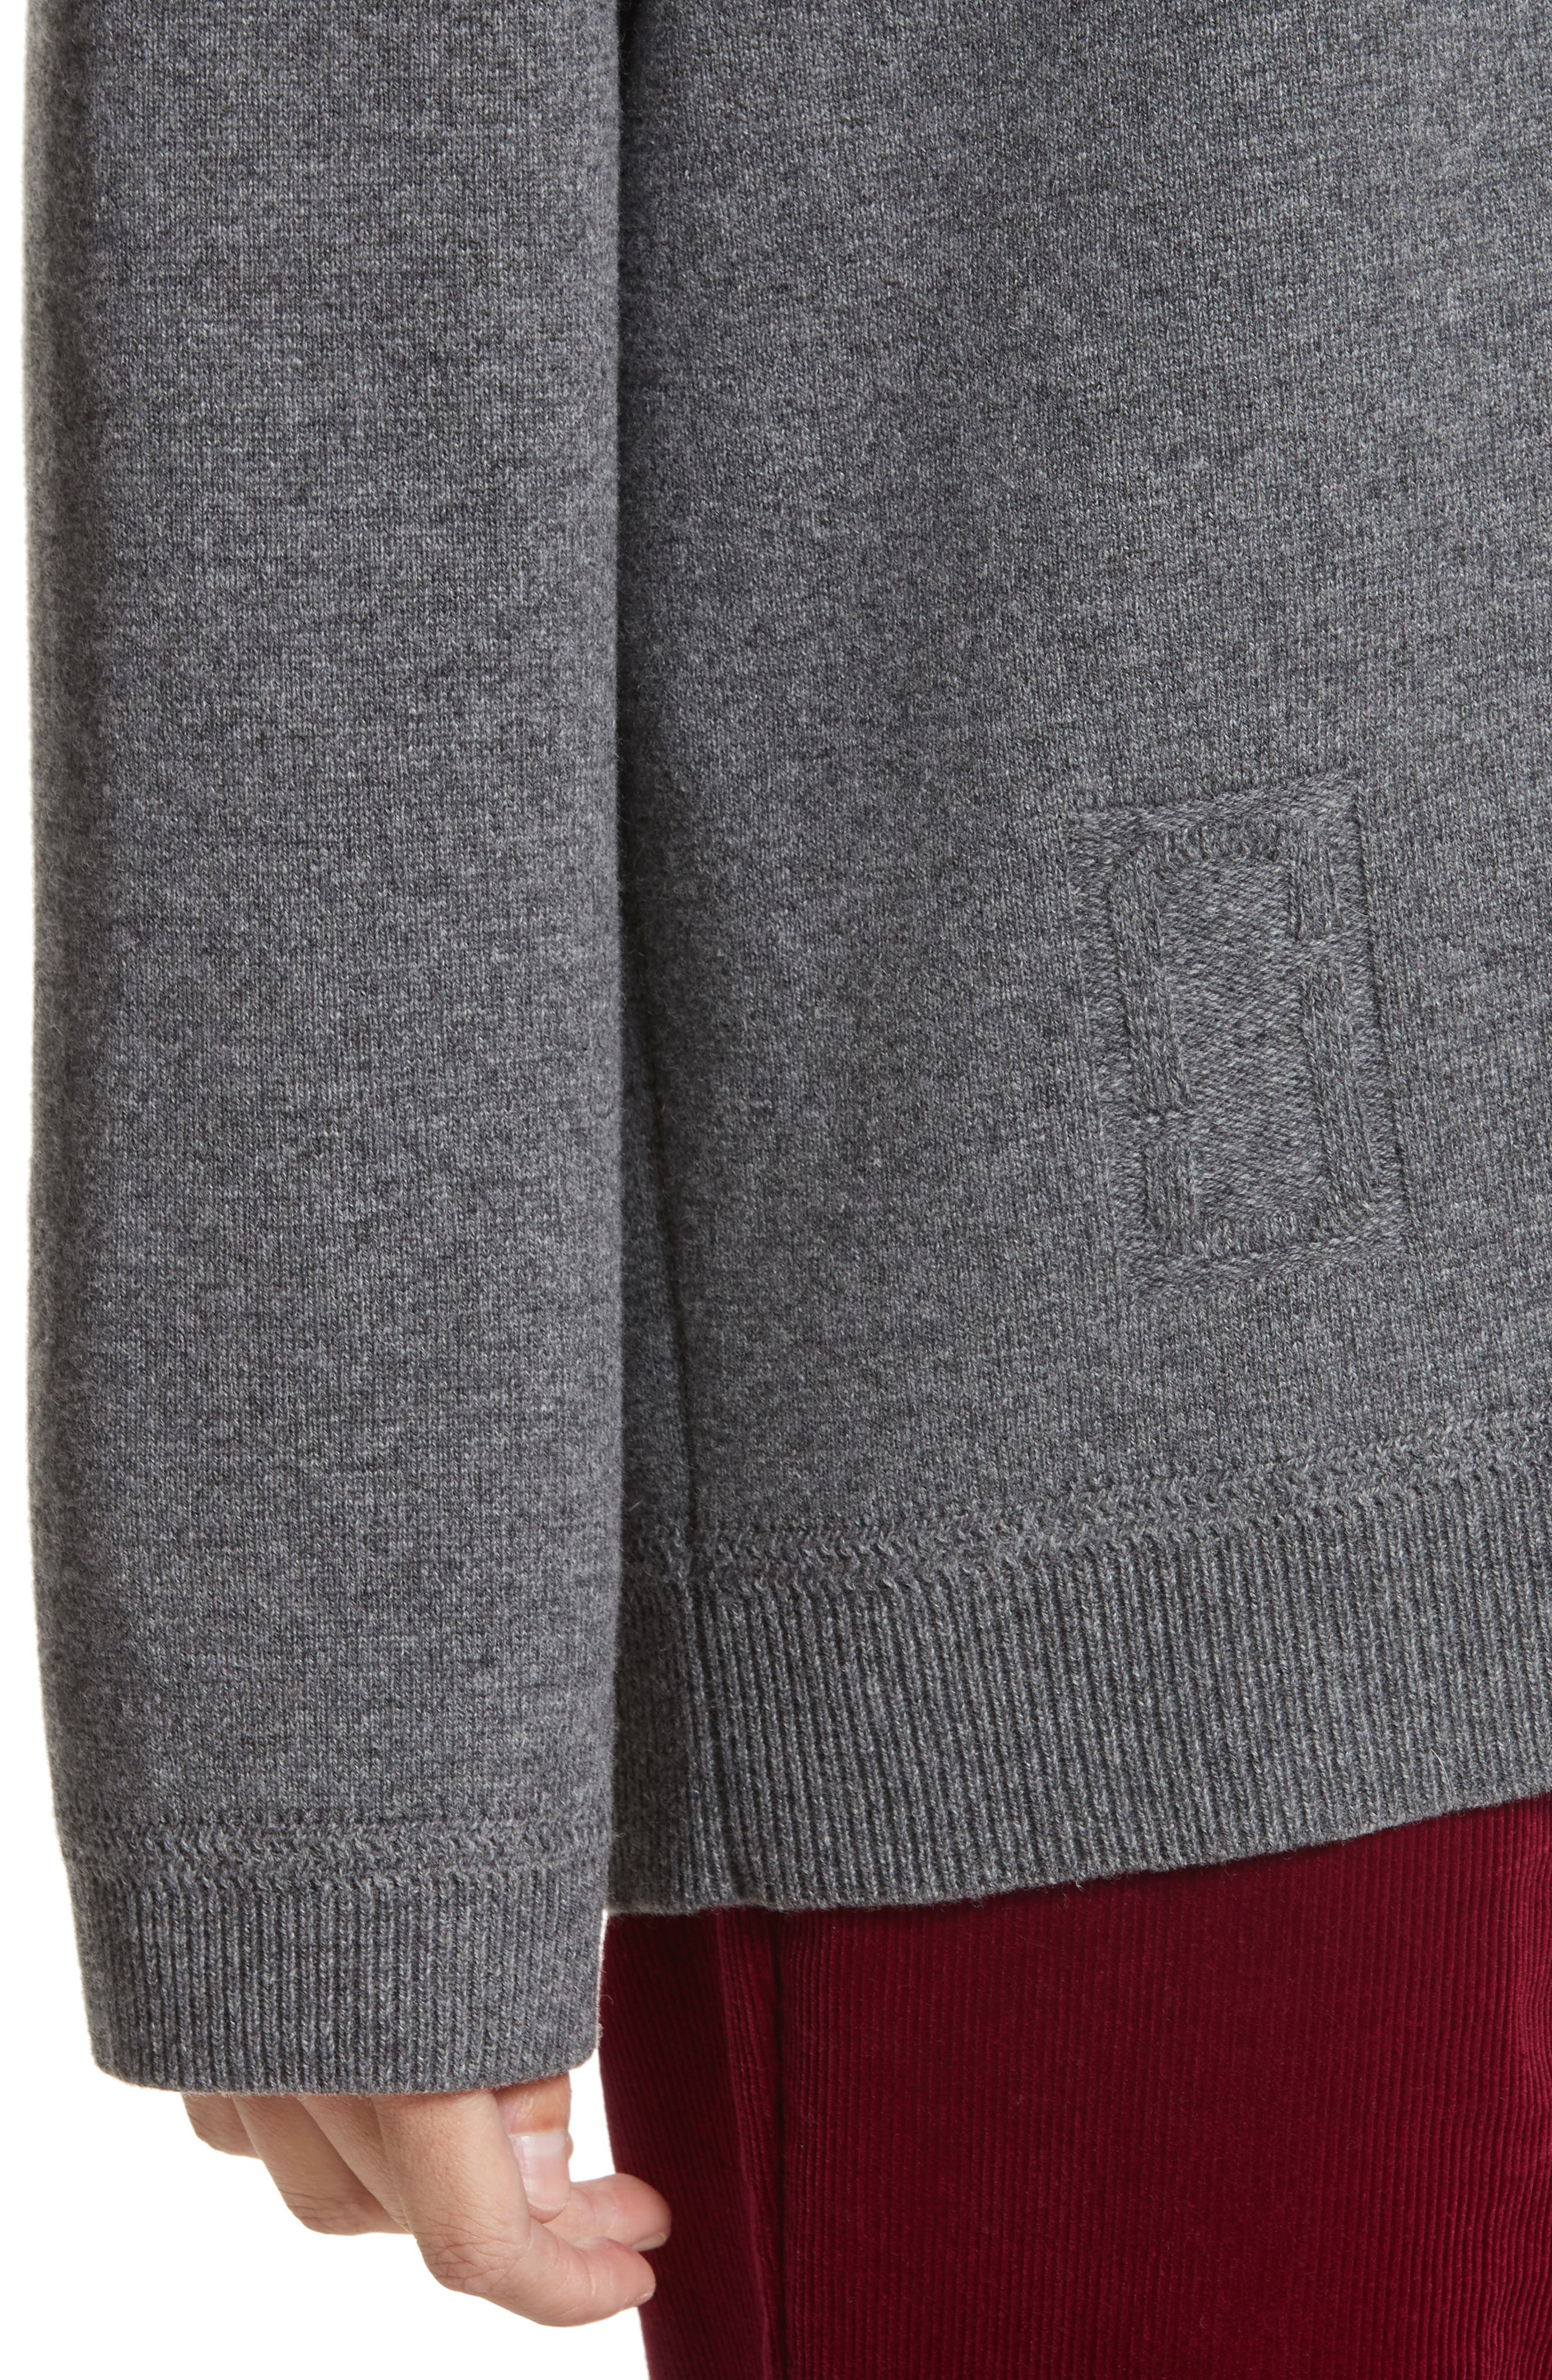 Wool & Cashmere Sweater,                             Alternate thumbnail 4, color,                             032